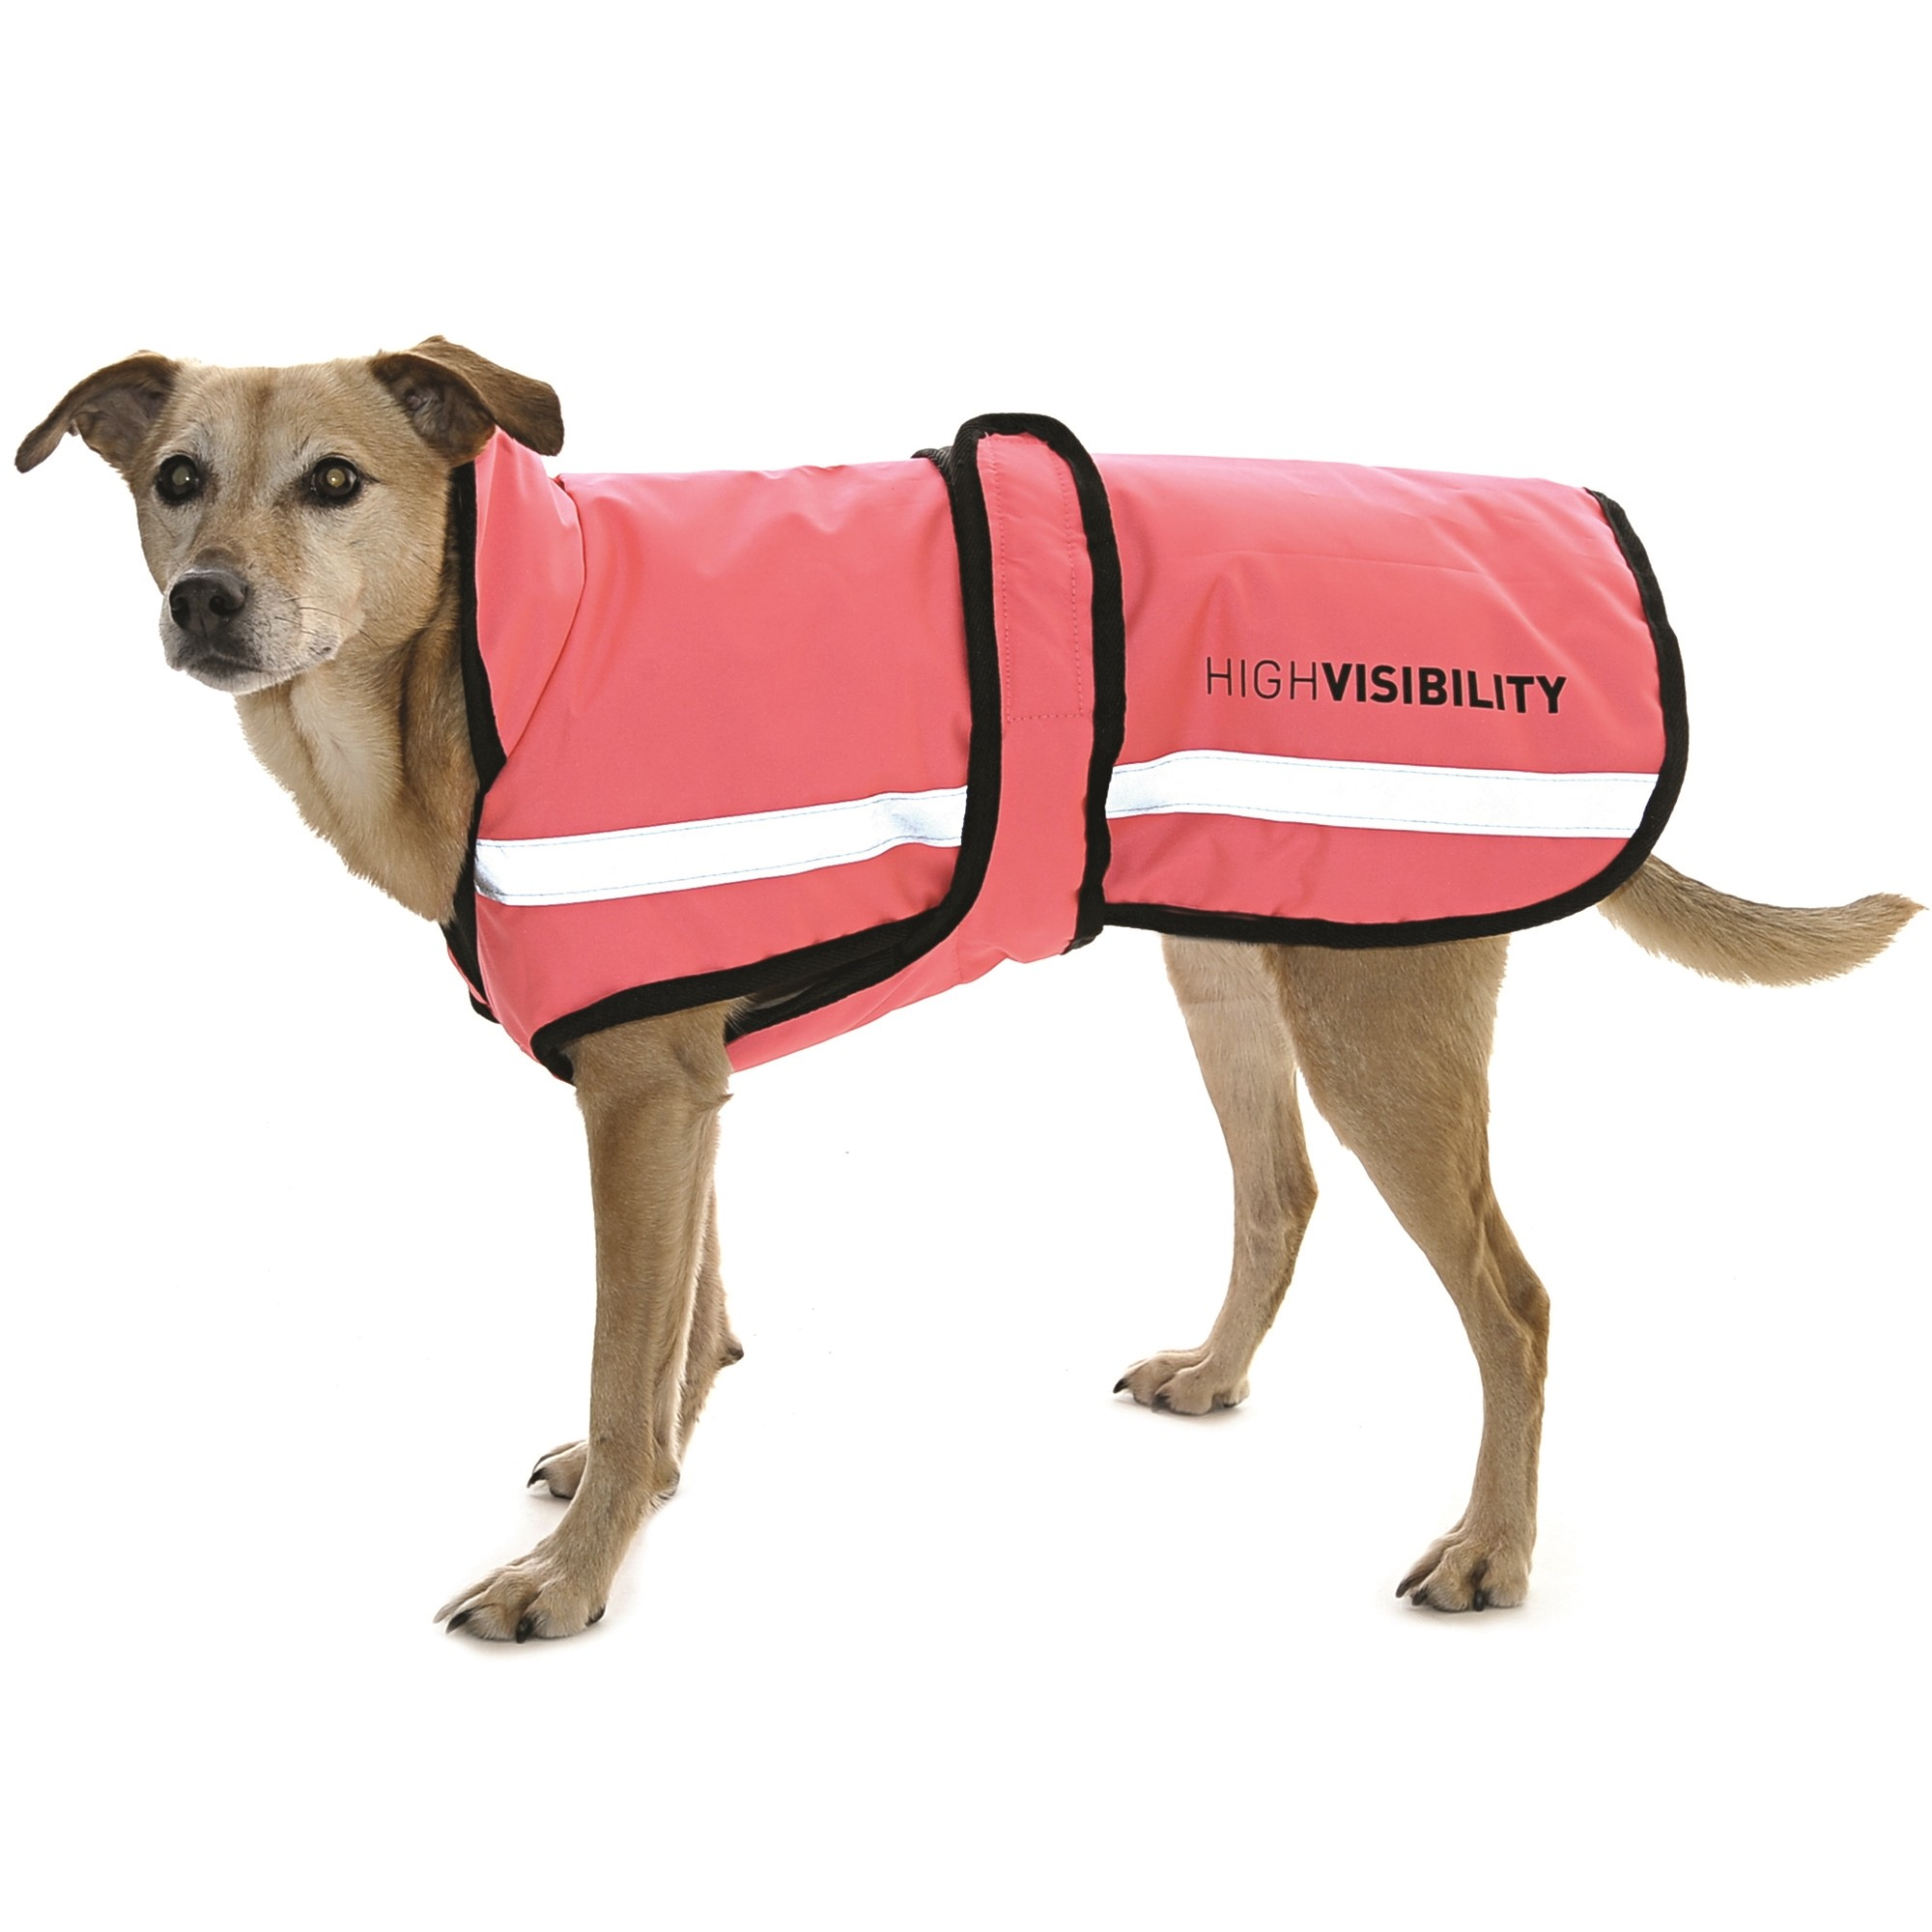 Equisafety Waterproof Dog Rug Pink